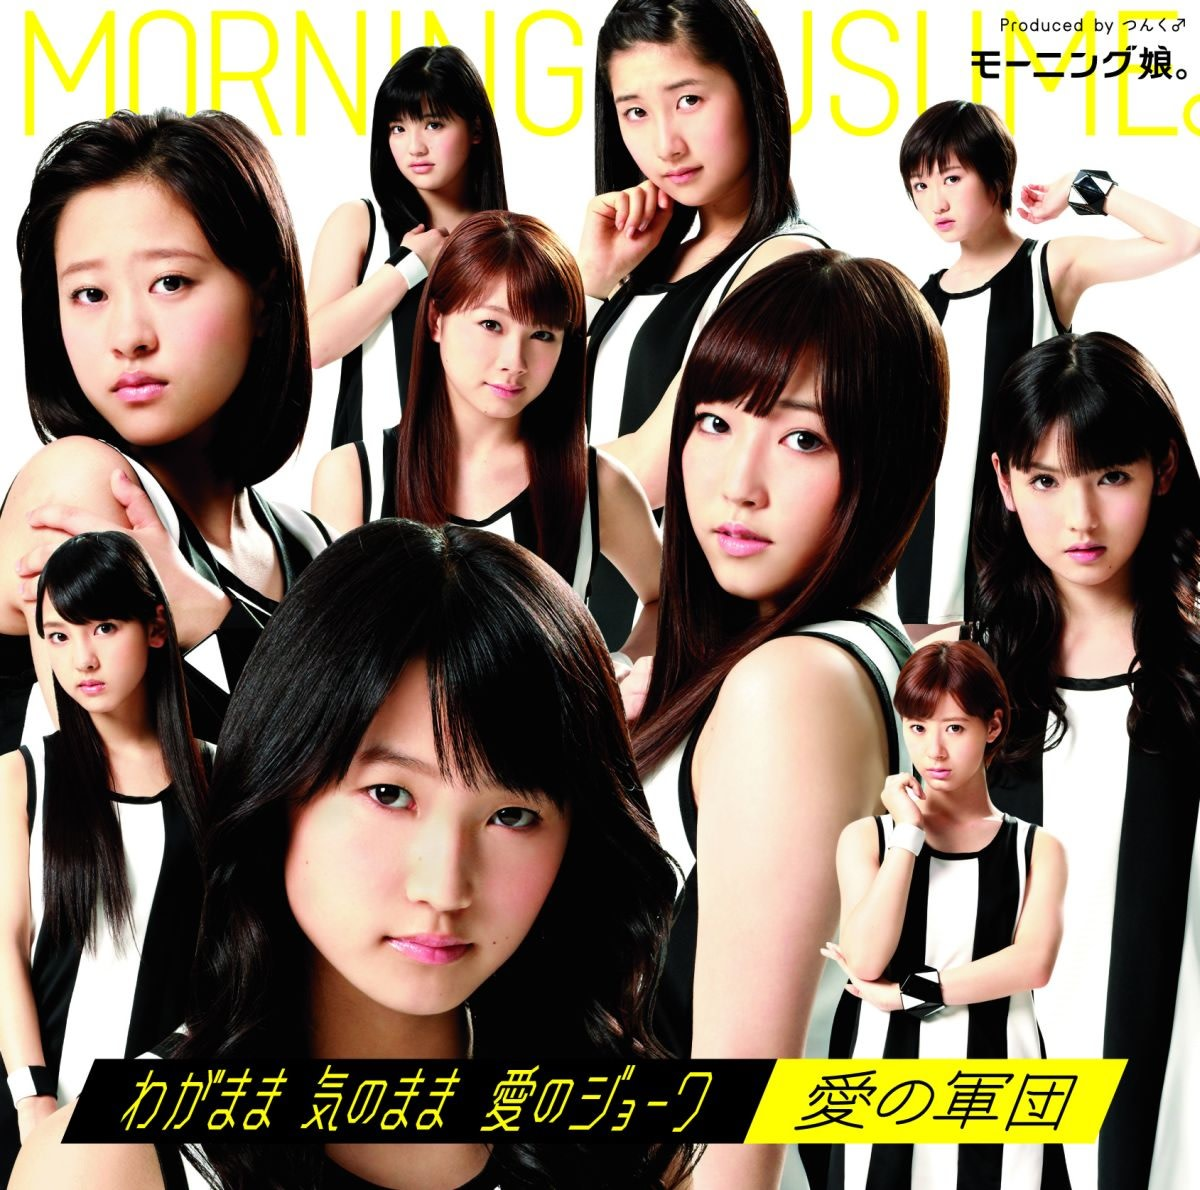 A Review of the Songs Selfish Easy Going Jokes of Love & Ai No Gundan by Japanese Pop Music Group Morning Musume